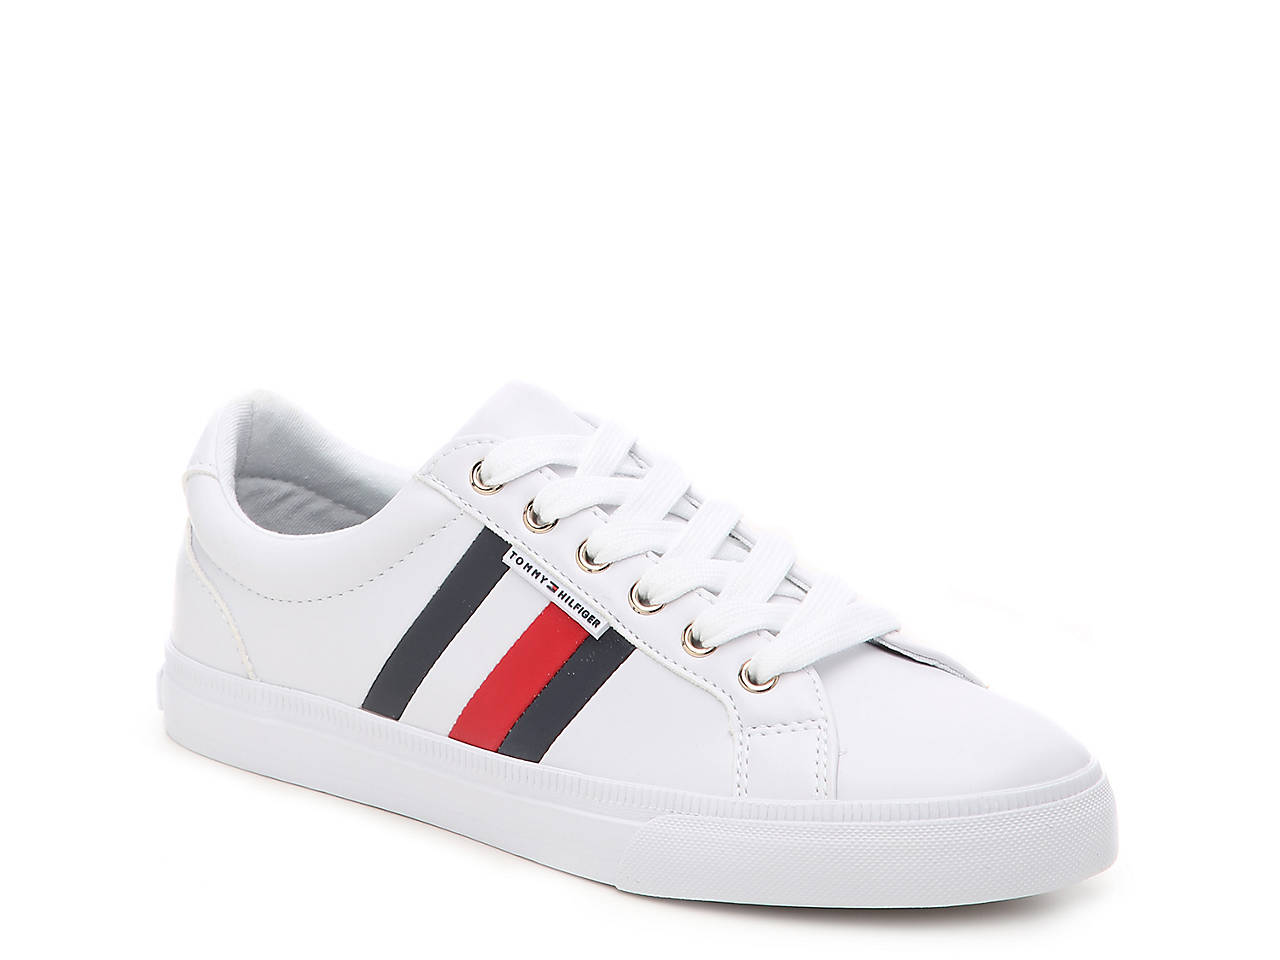 97eb884a Tommy Hilfiger Lightz Sneaker Women's Shoes | DSW